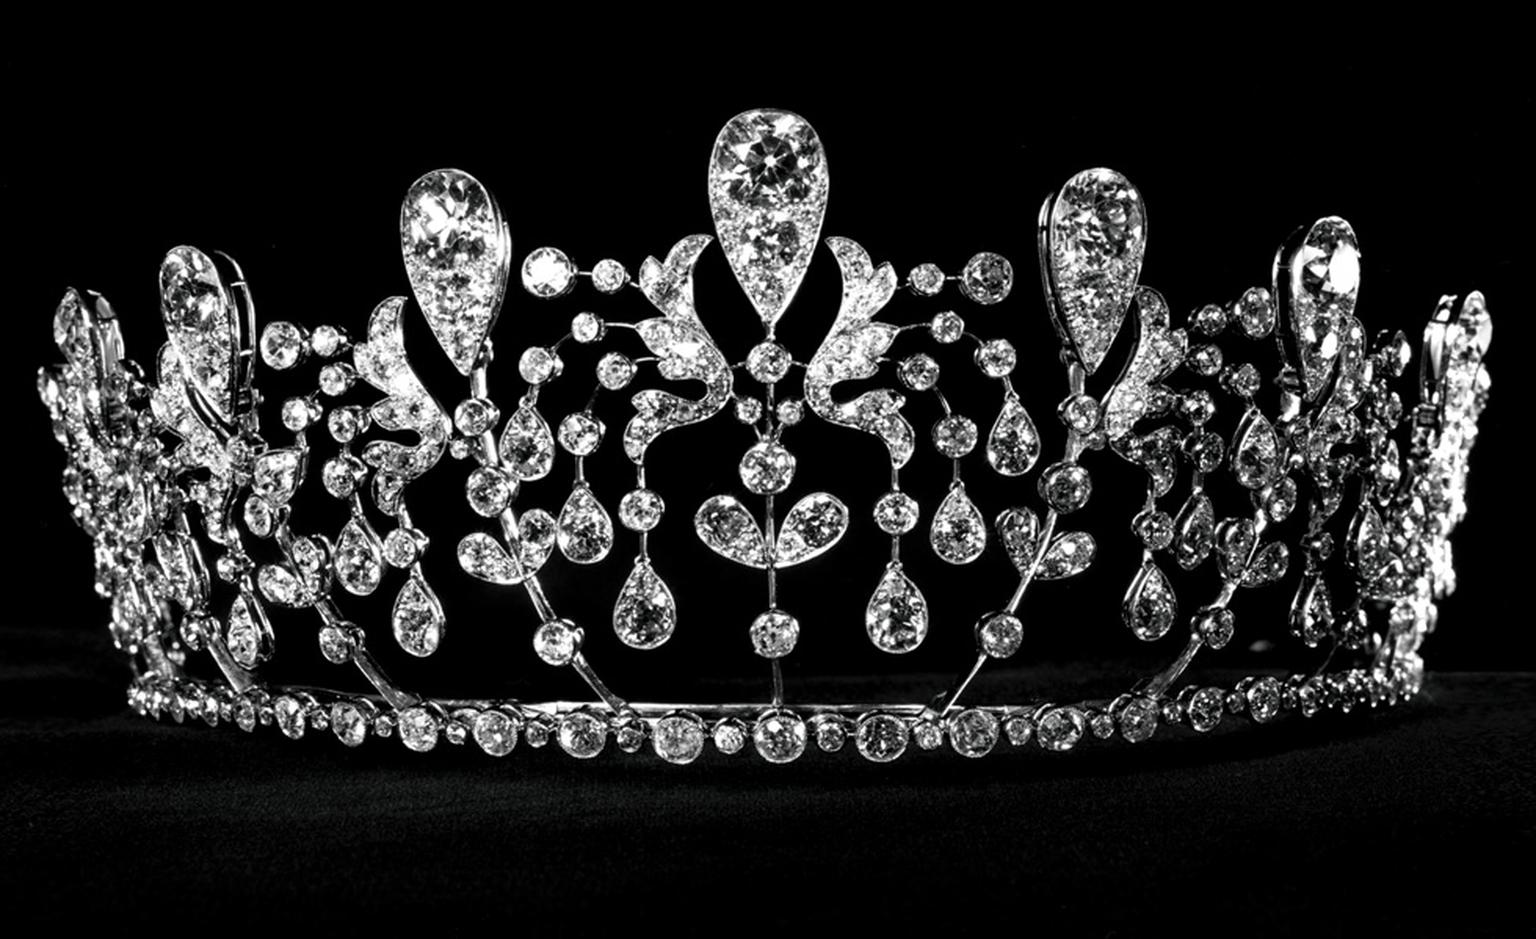 1819 Bourbon-Parma tiara in platinum and diamonds by Joseph Chaumet.